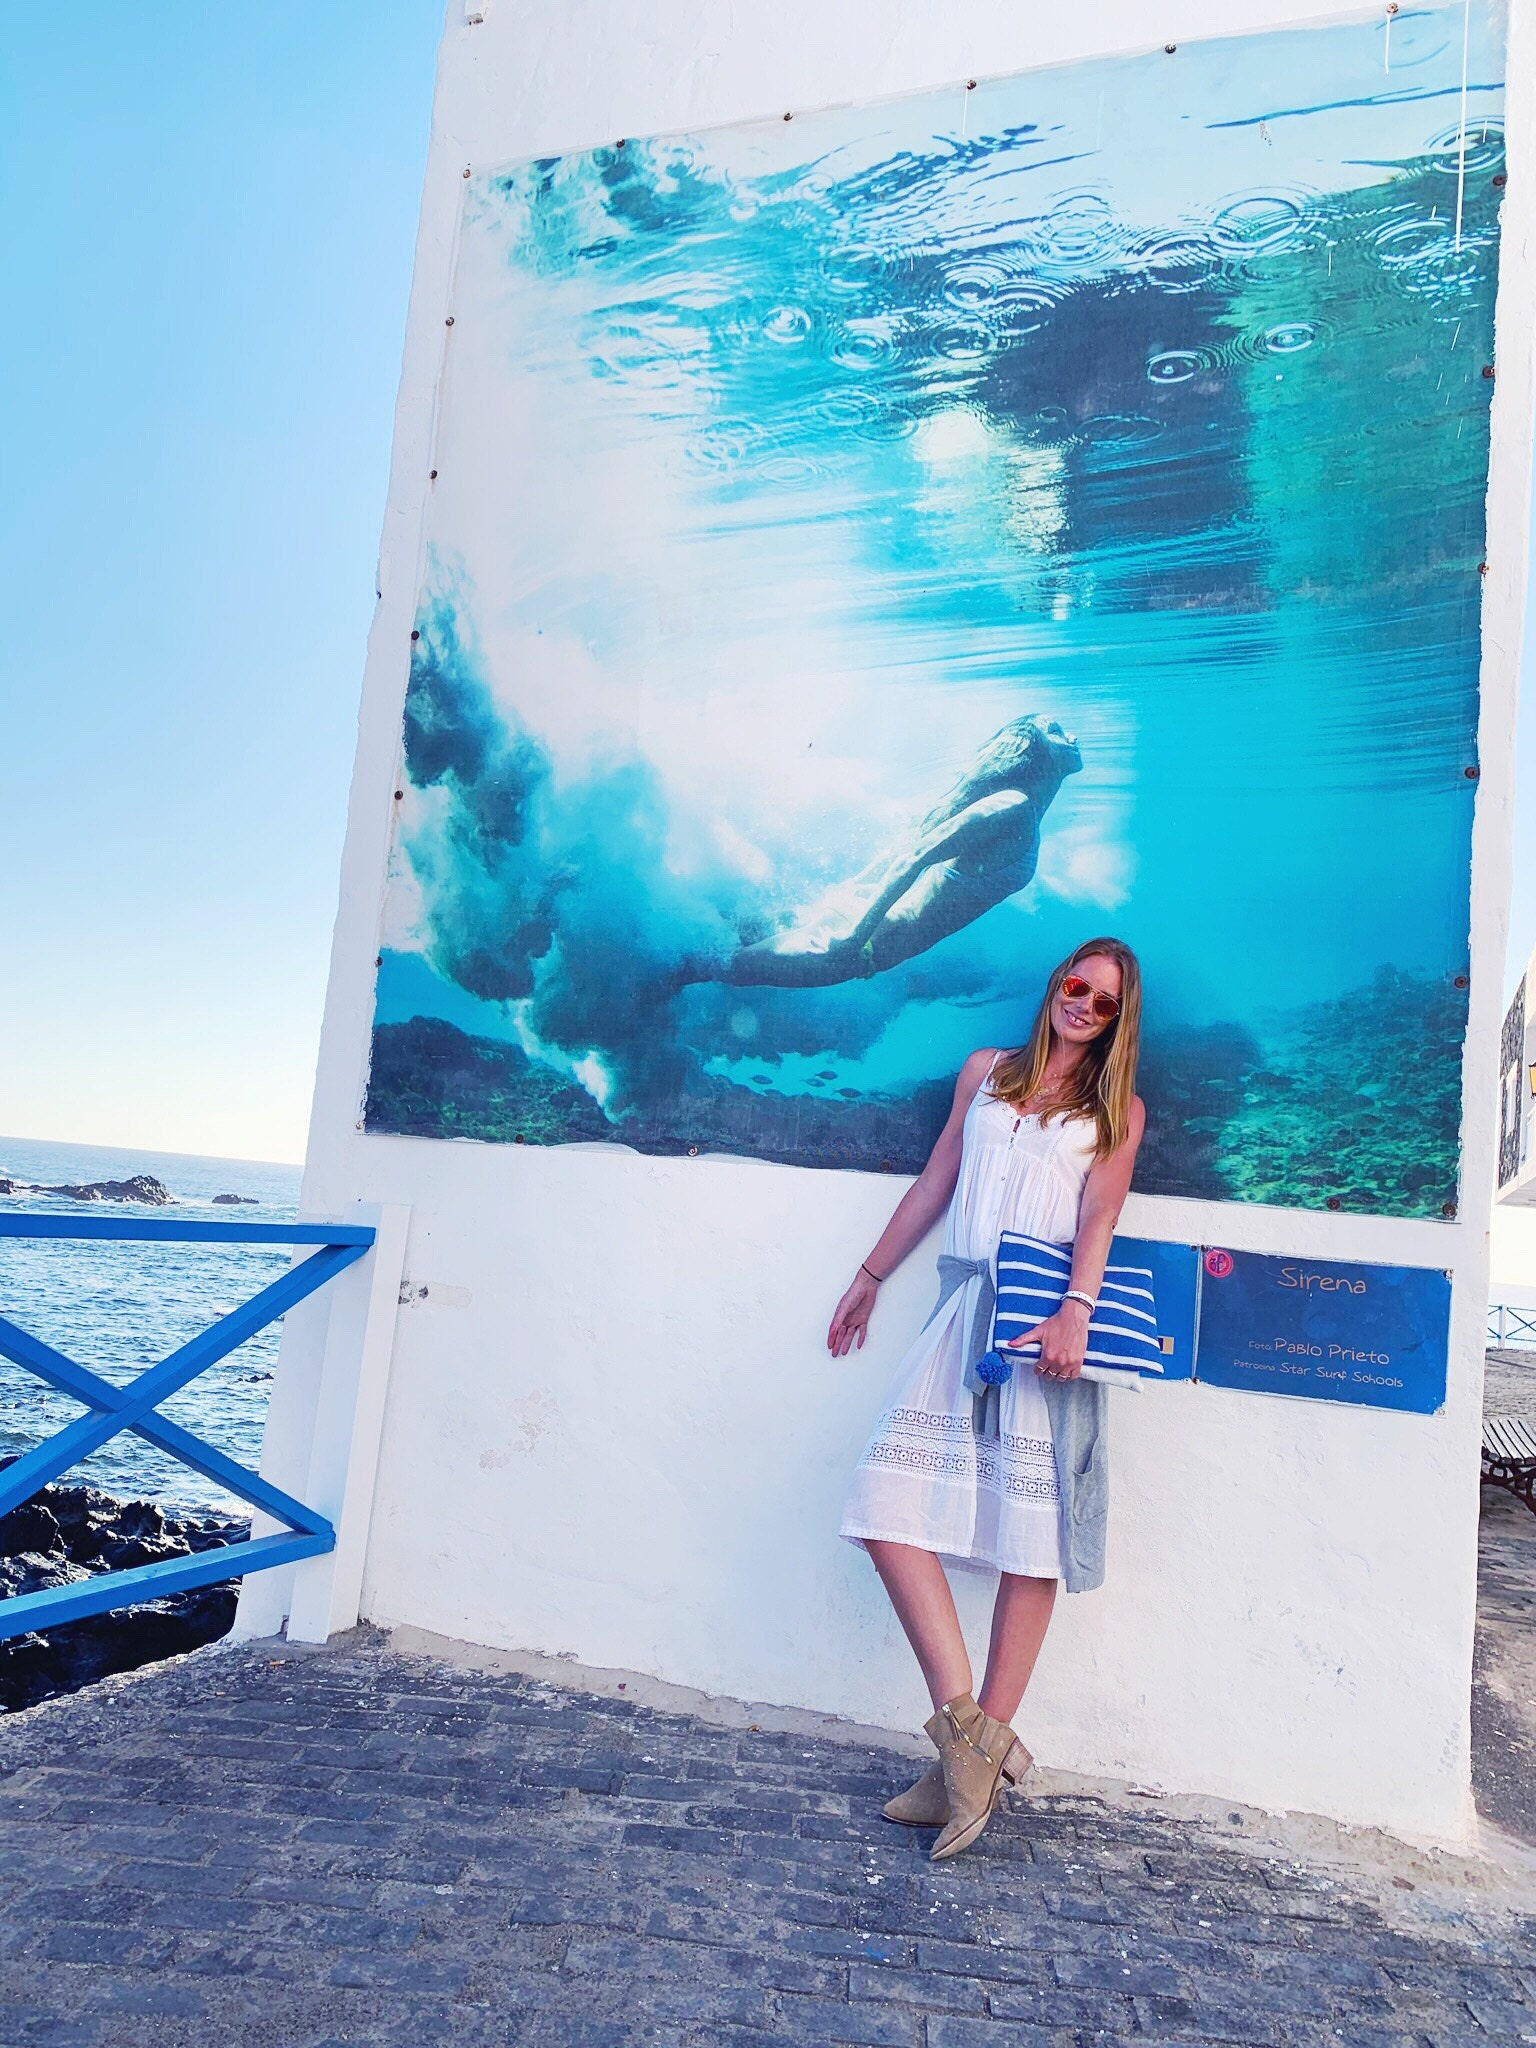 Surf photography on the walls of El Cotillo